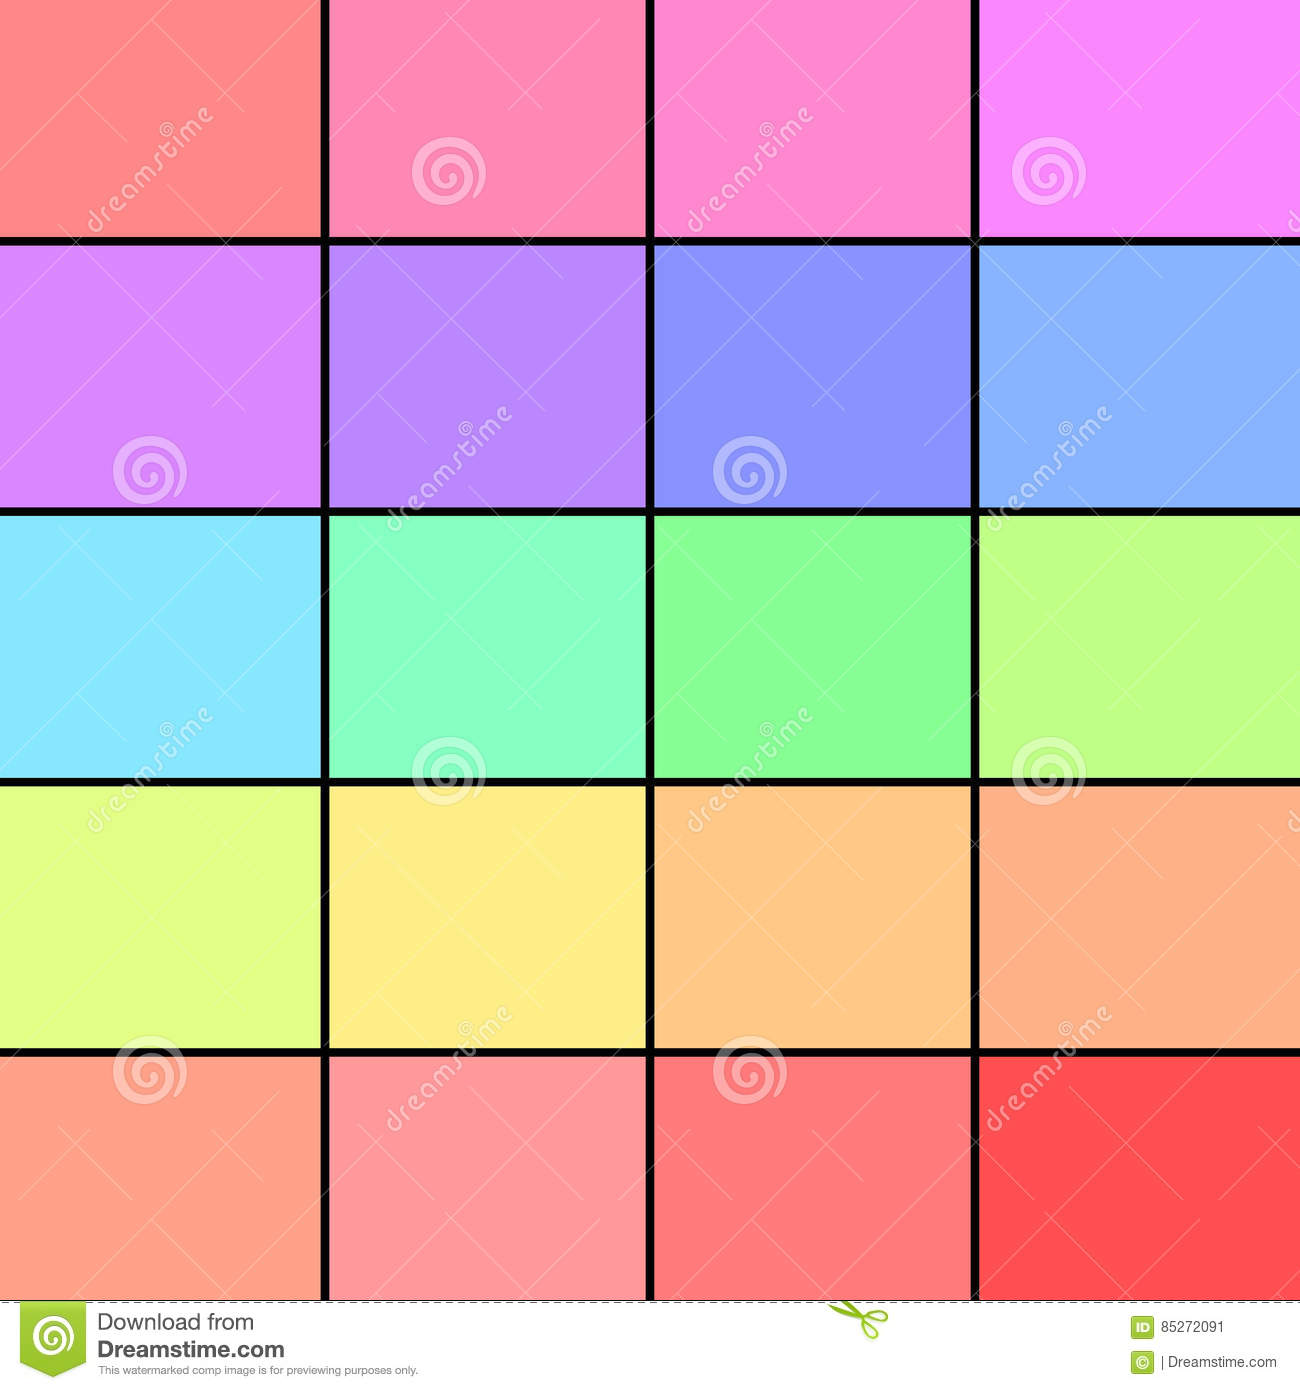 Pastel Color Palette: Pastel Color Palette Stock Illustration. Illustration Of